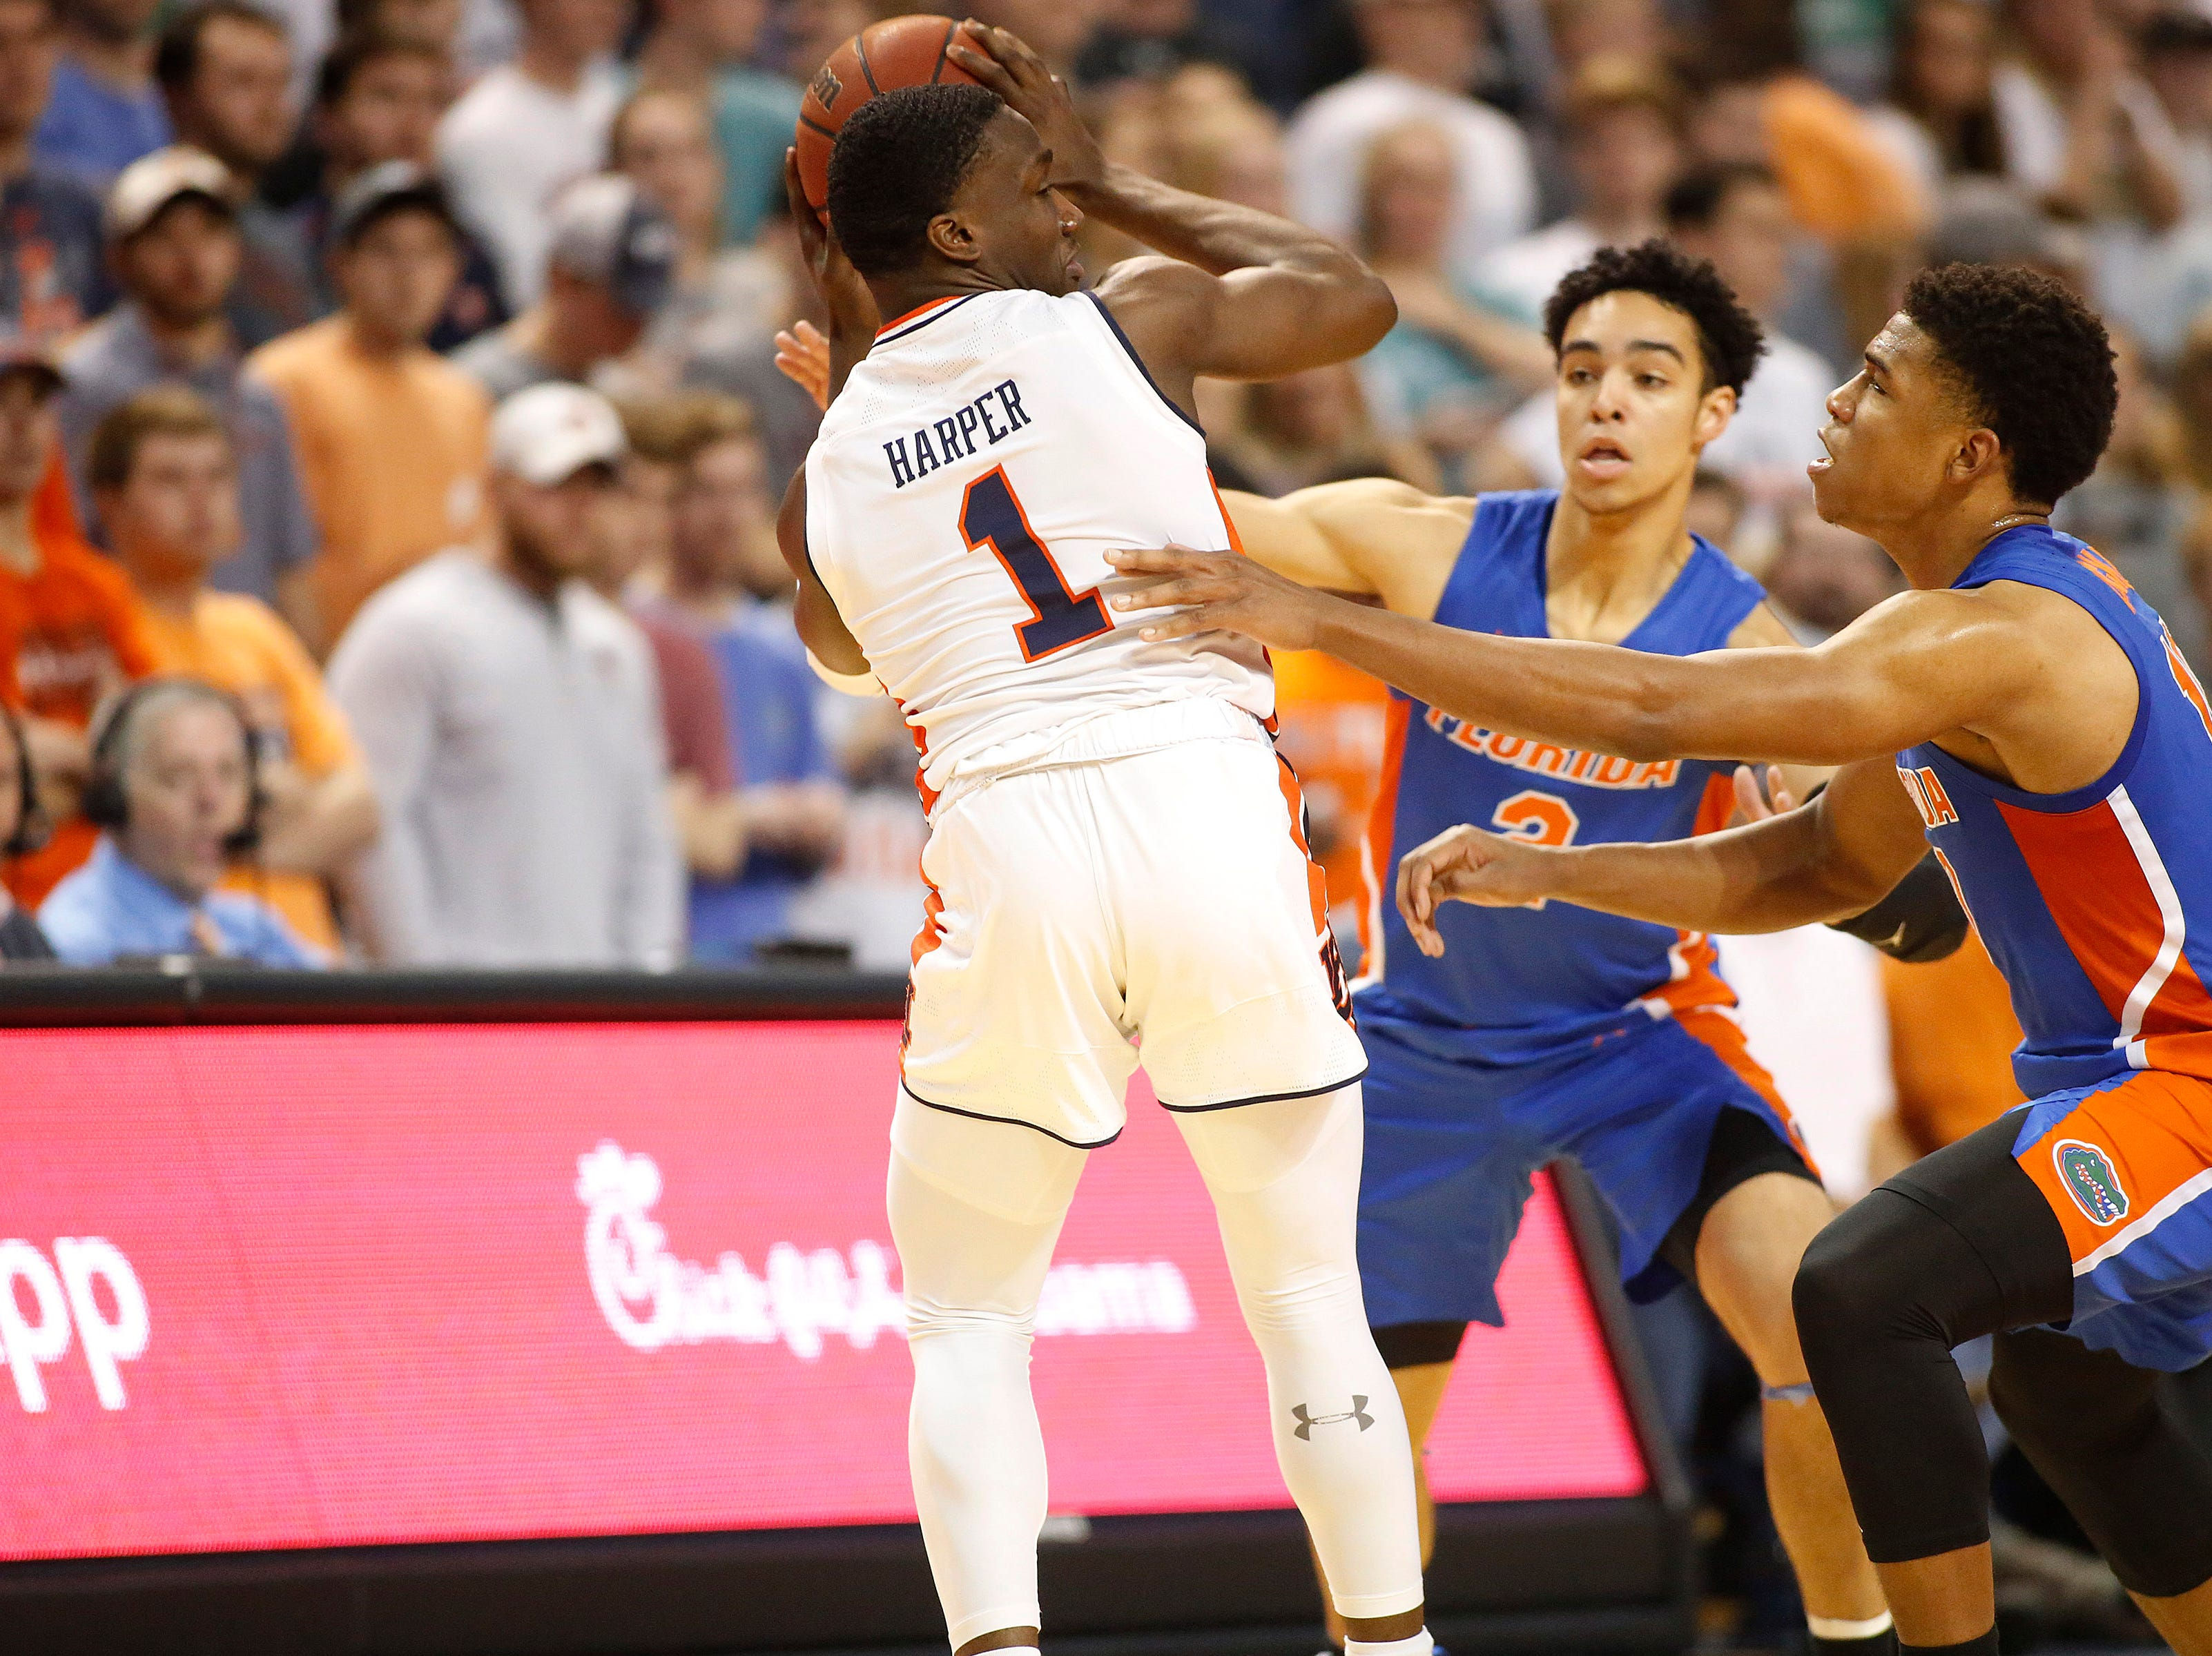 Feb 5, 2019; Auburn, AL, USA; Auburn Tigers guard Jared Harper (1) is surrounded by Florida Gators guard Andrew Nembhard (2) and guard Noah Locke (10) during the first half at Auburn Arena. Mandatory Credit: John Reed-USA TODAY Sports